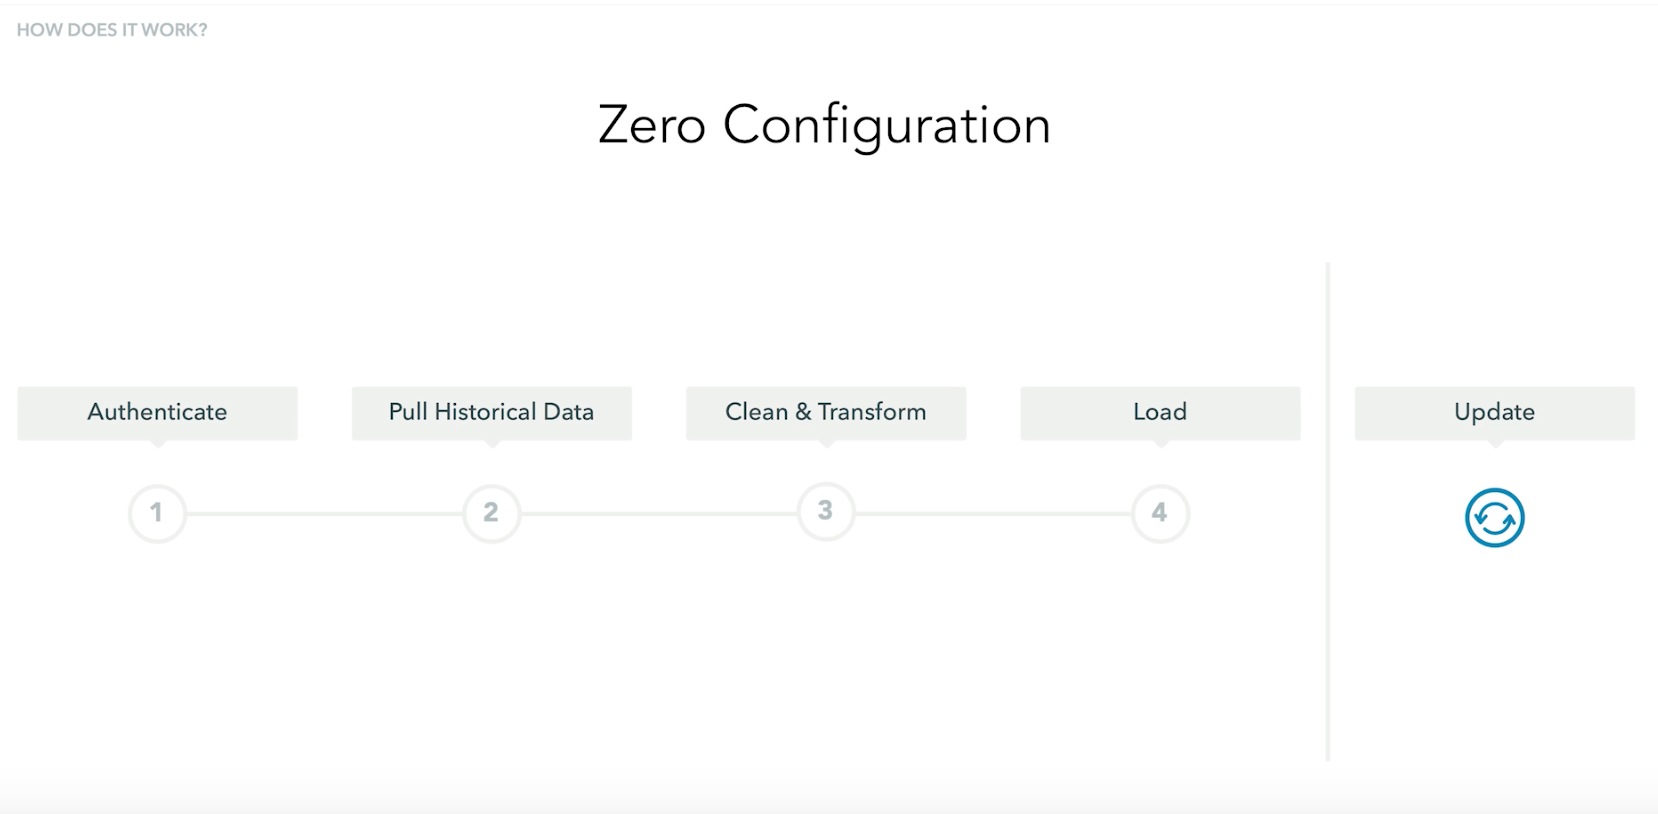 Fivetran is a zero configuration data pipeline, enabling users to get up and running in 5 minutes